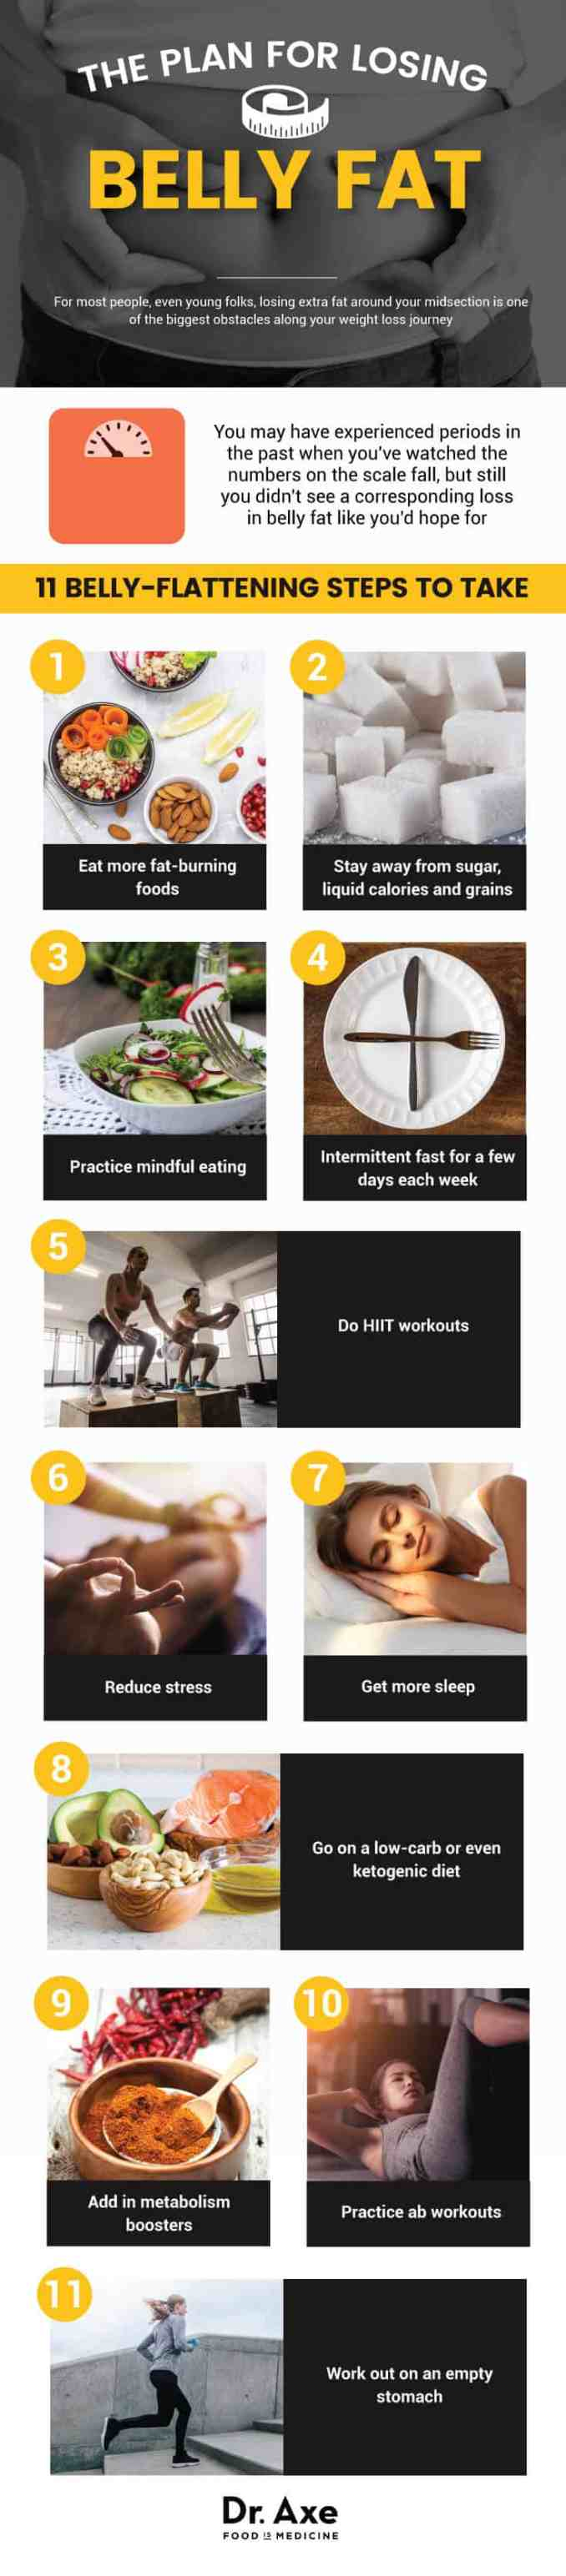 Plan for how to lose belly fat - Dr. Axe